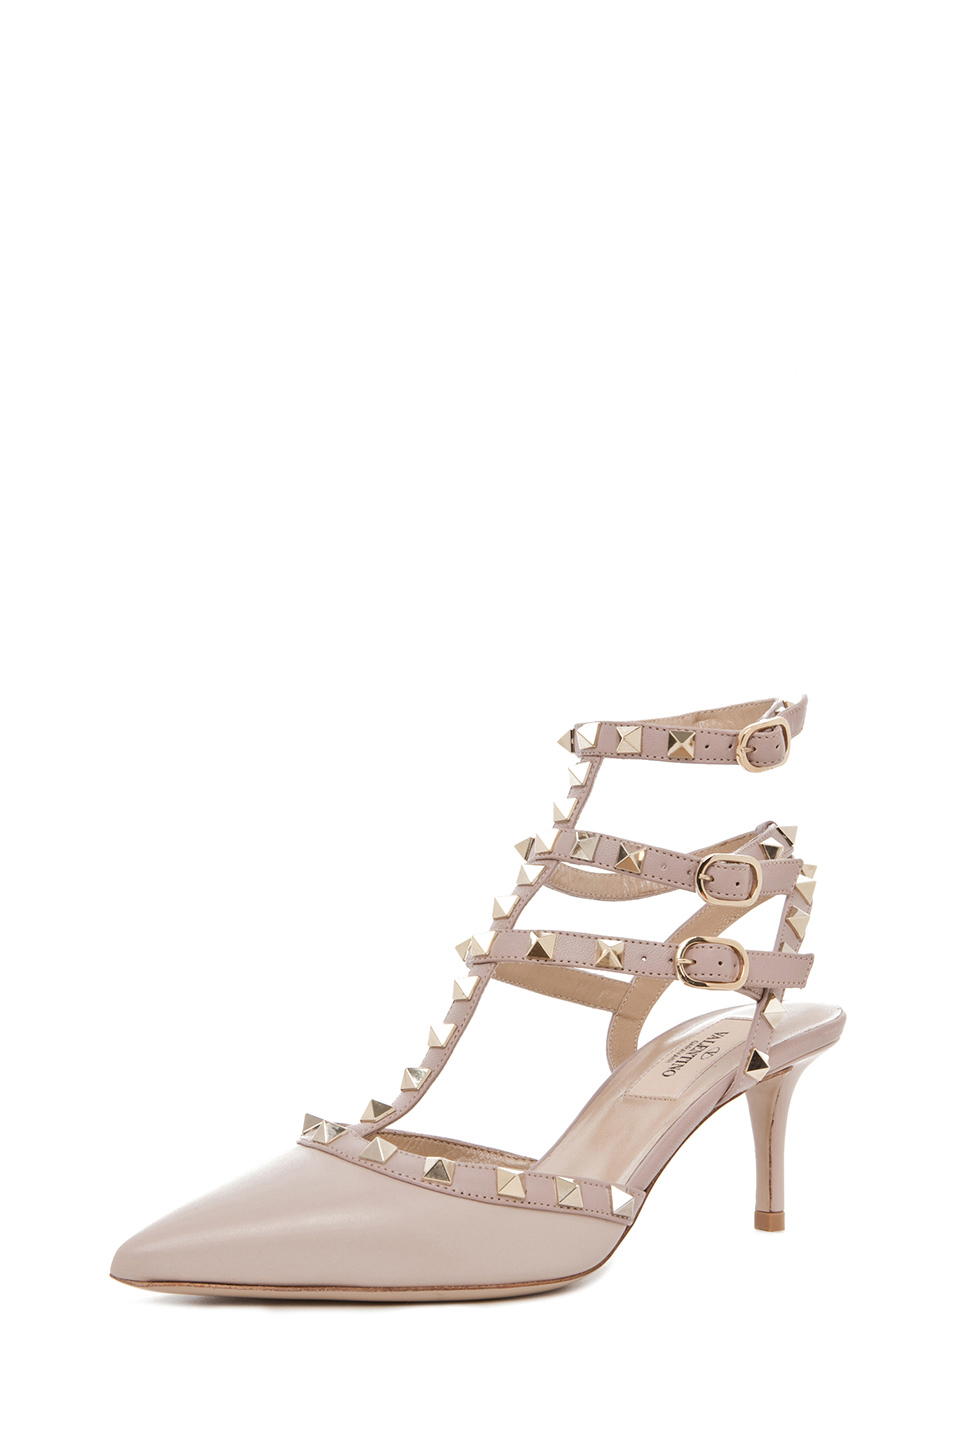 Valentino|Rockstud Leather Slingbacks T.65 in Powder